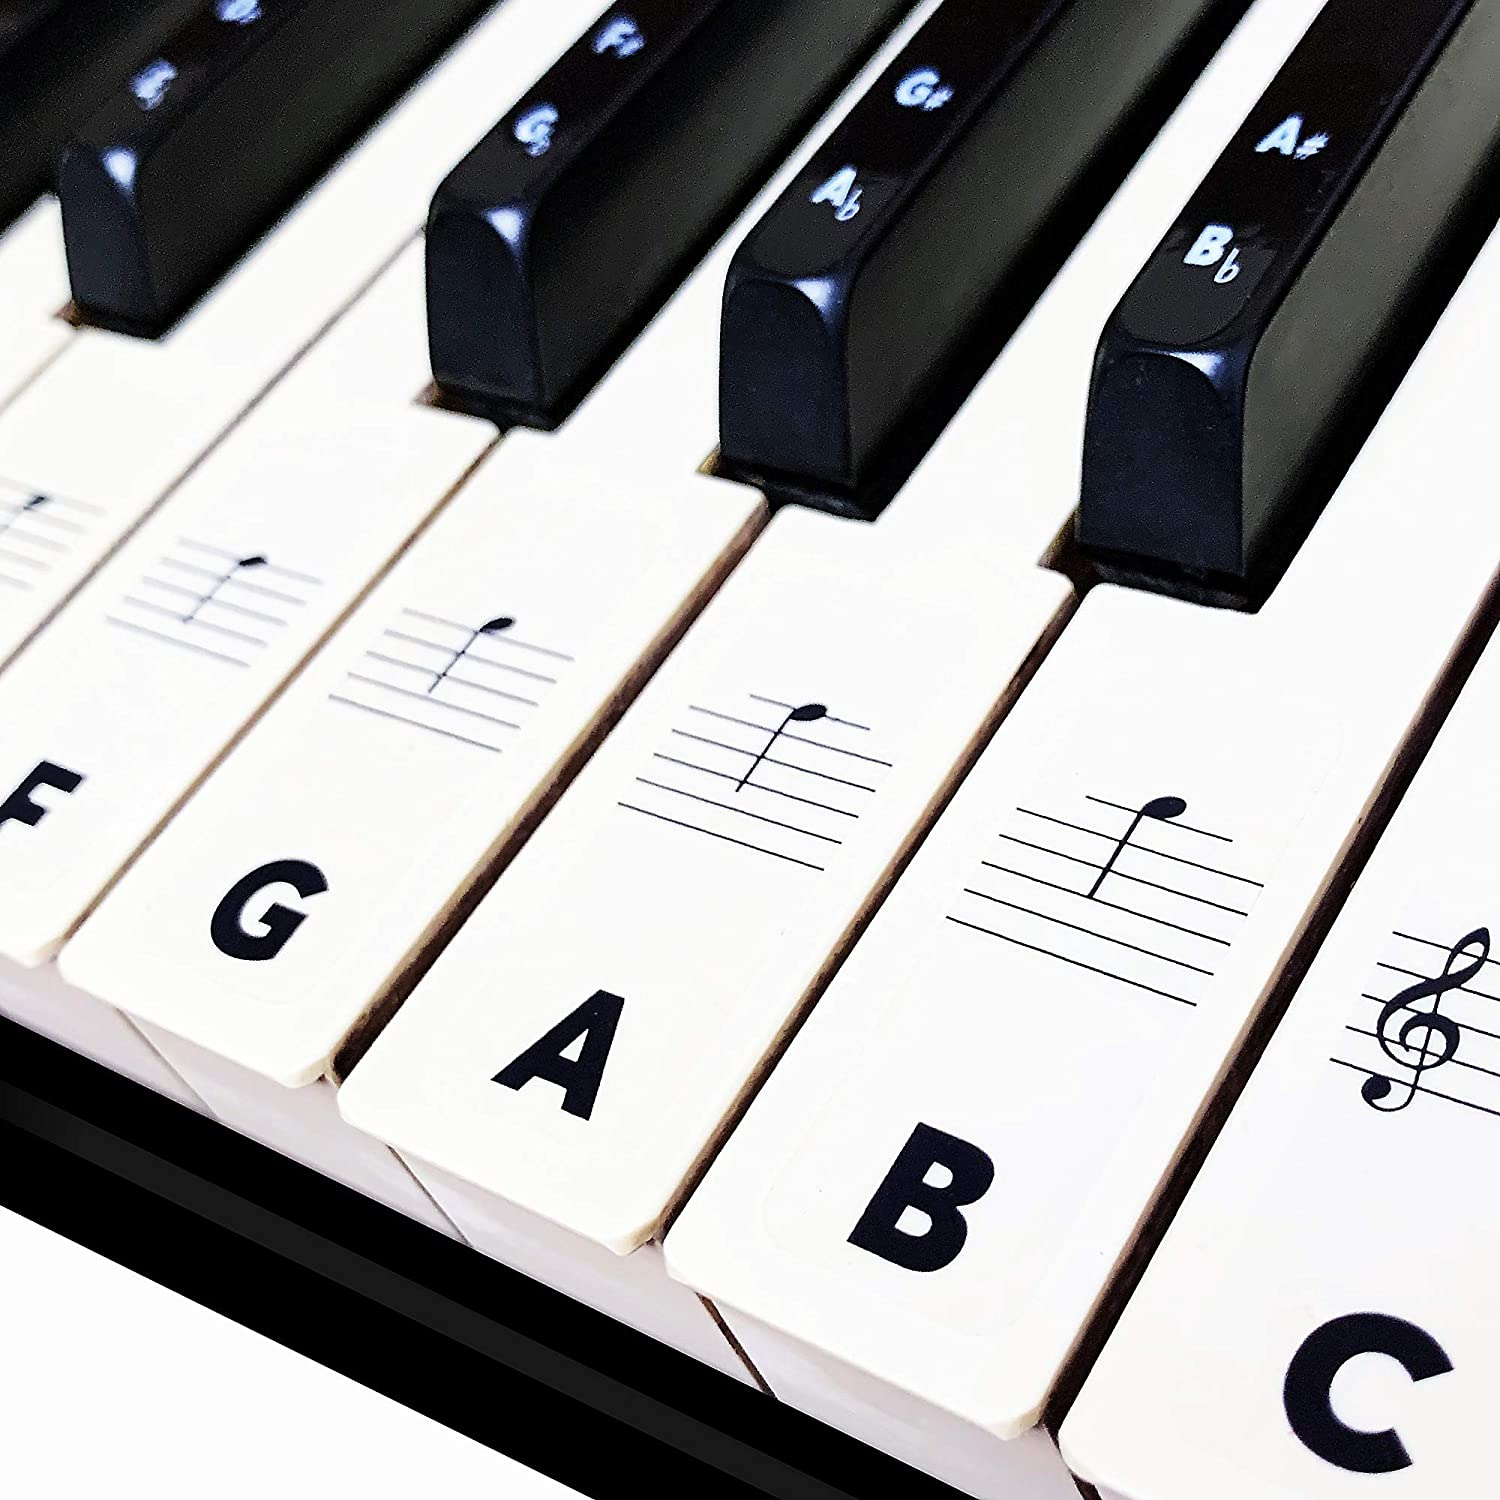 Piano Keyboard Stickers for Beginners 88/76/61/54/49/37 Keys - Removable, Transparent, Double Layer Coating Piano Stickers - Perfect for Kids, Big Letters, Easy to Install with Cleaning Cloth